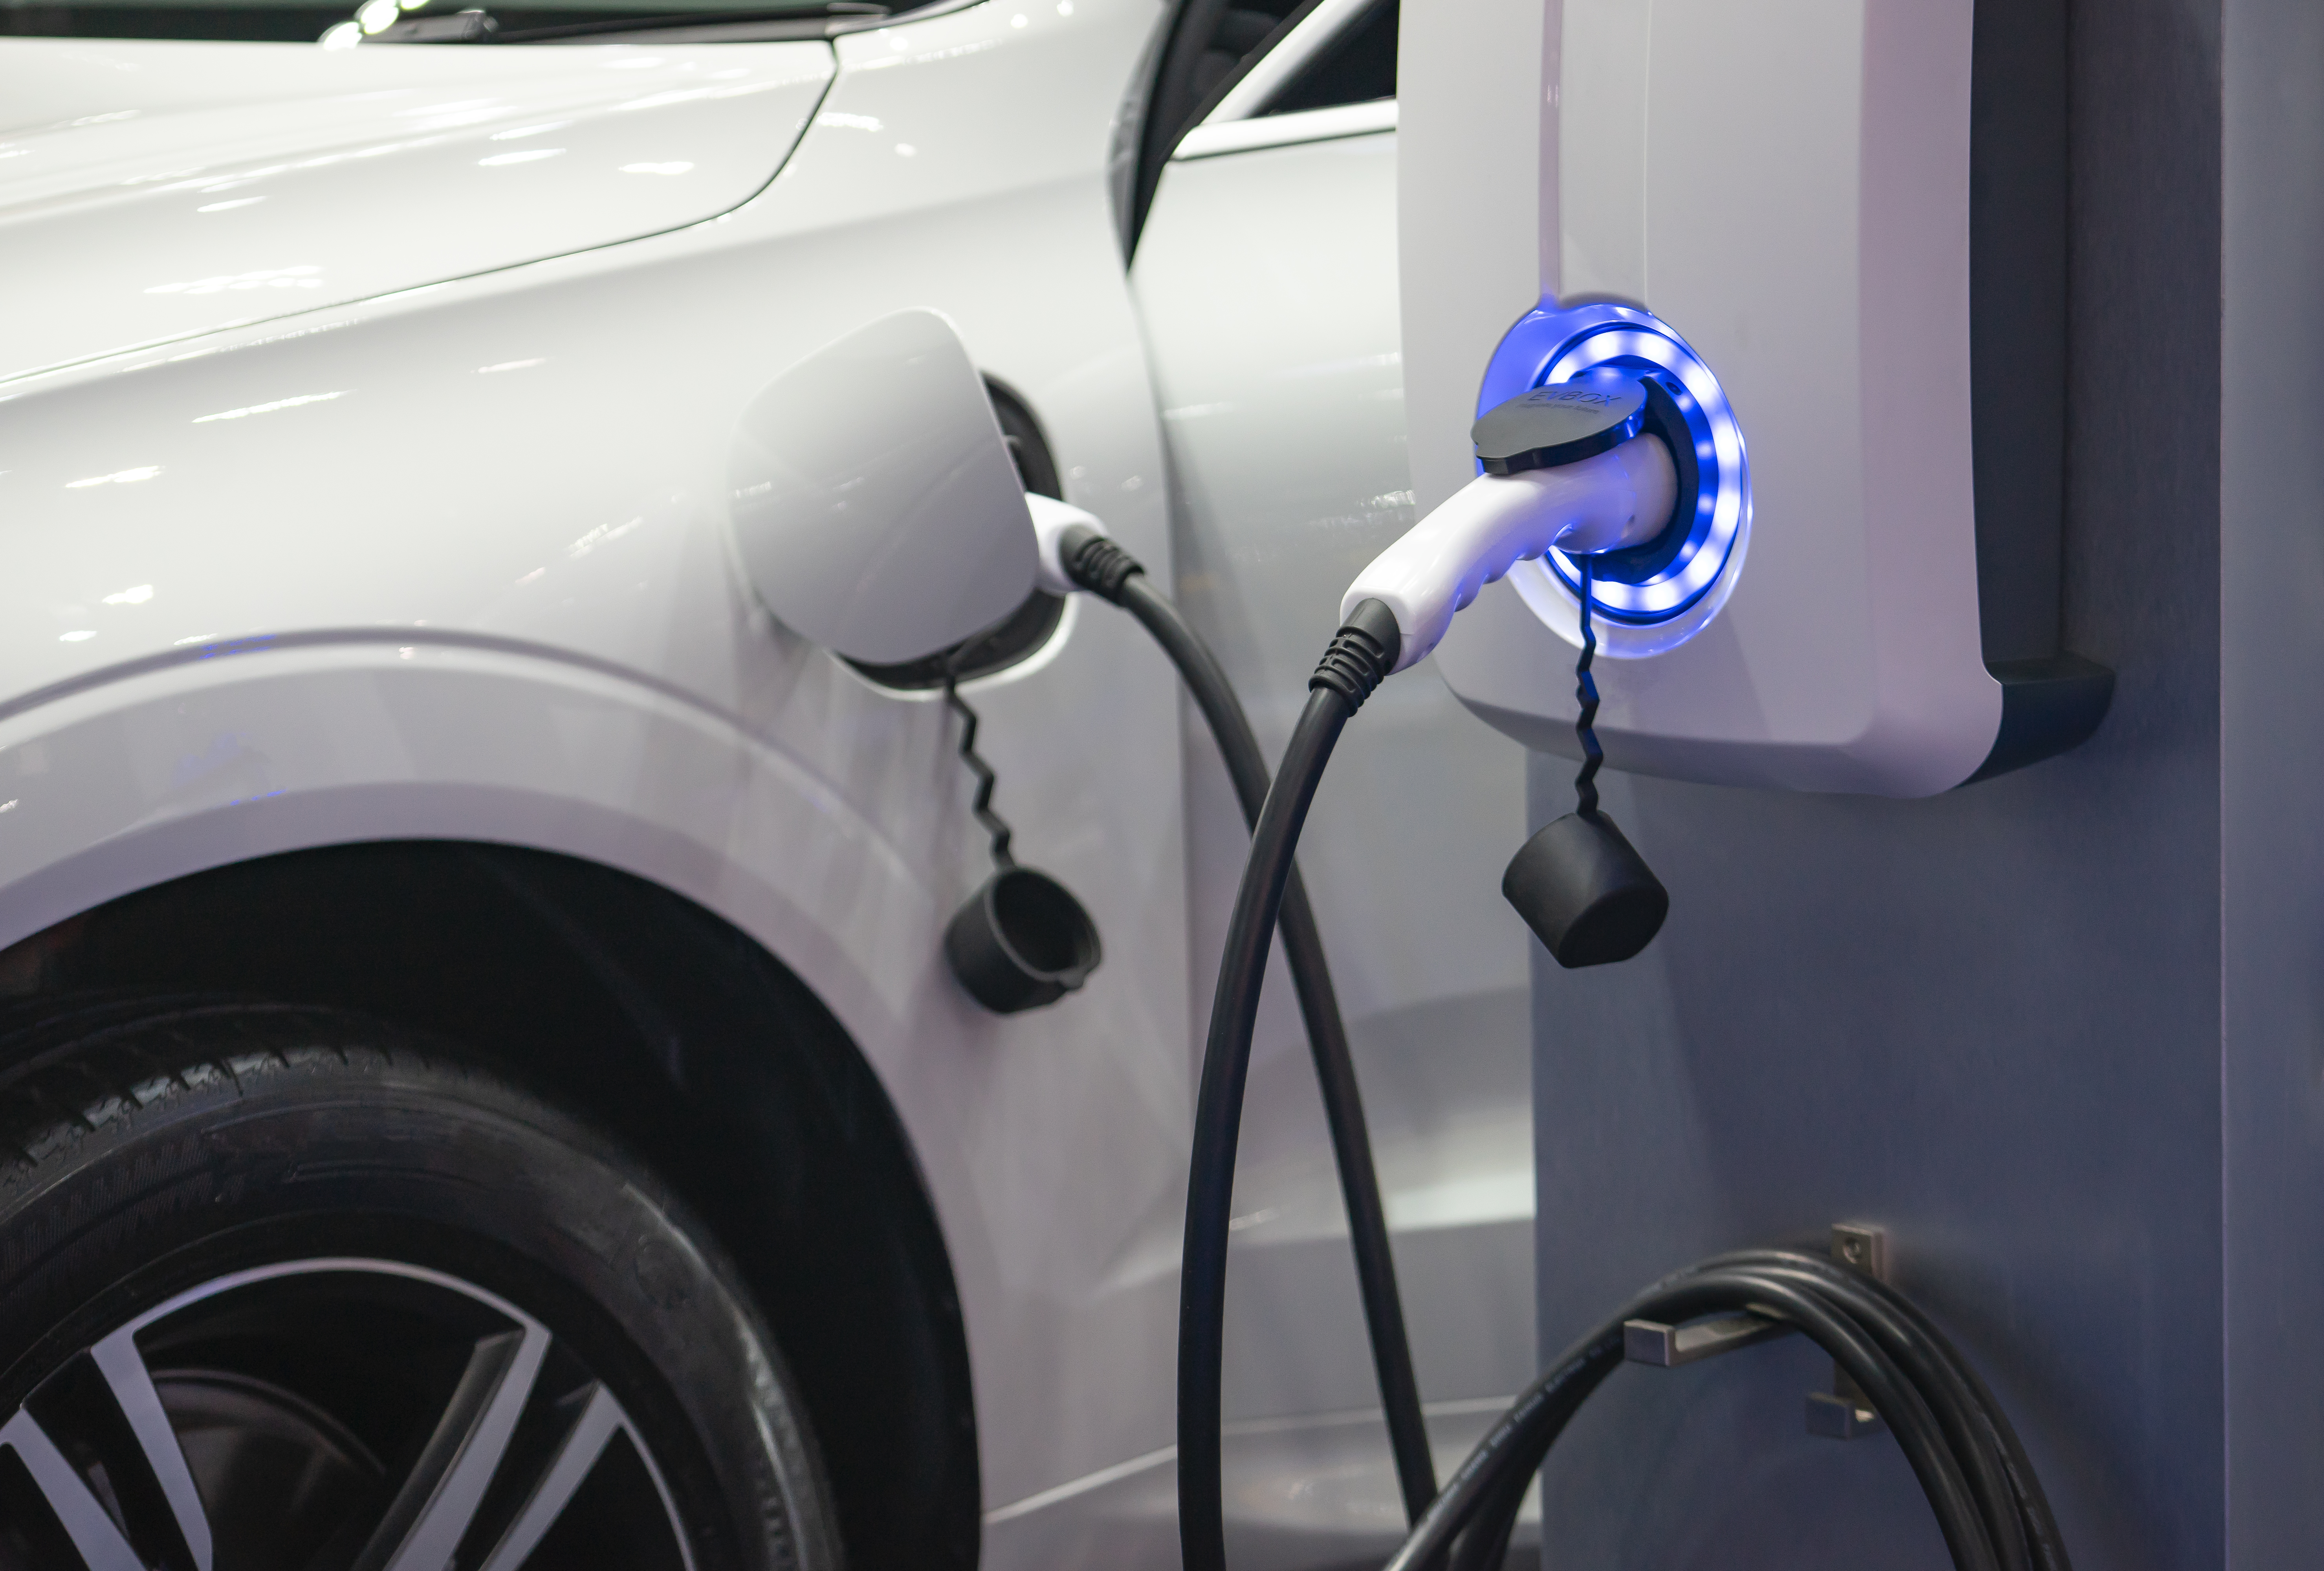 Card Readers At Electric Vehicle Charging Stations Will Weaken Security Researchers Say Techcrunch,Best Artificial Christmas Tree 2020 Uk